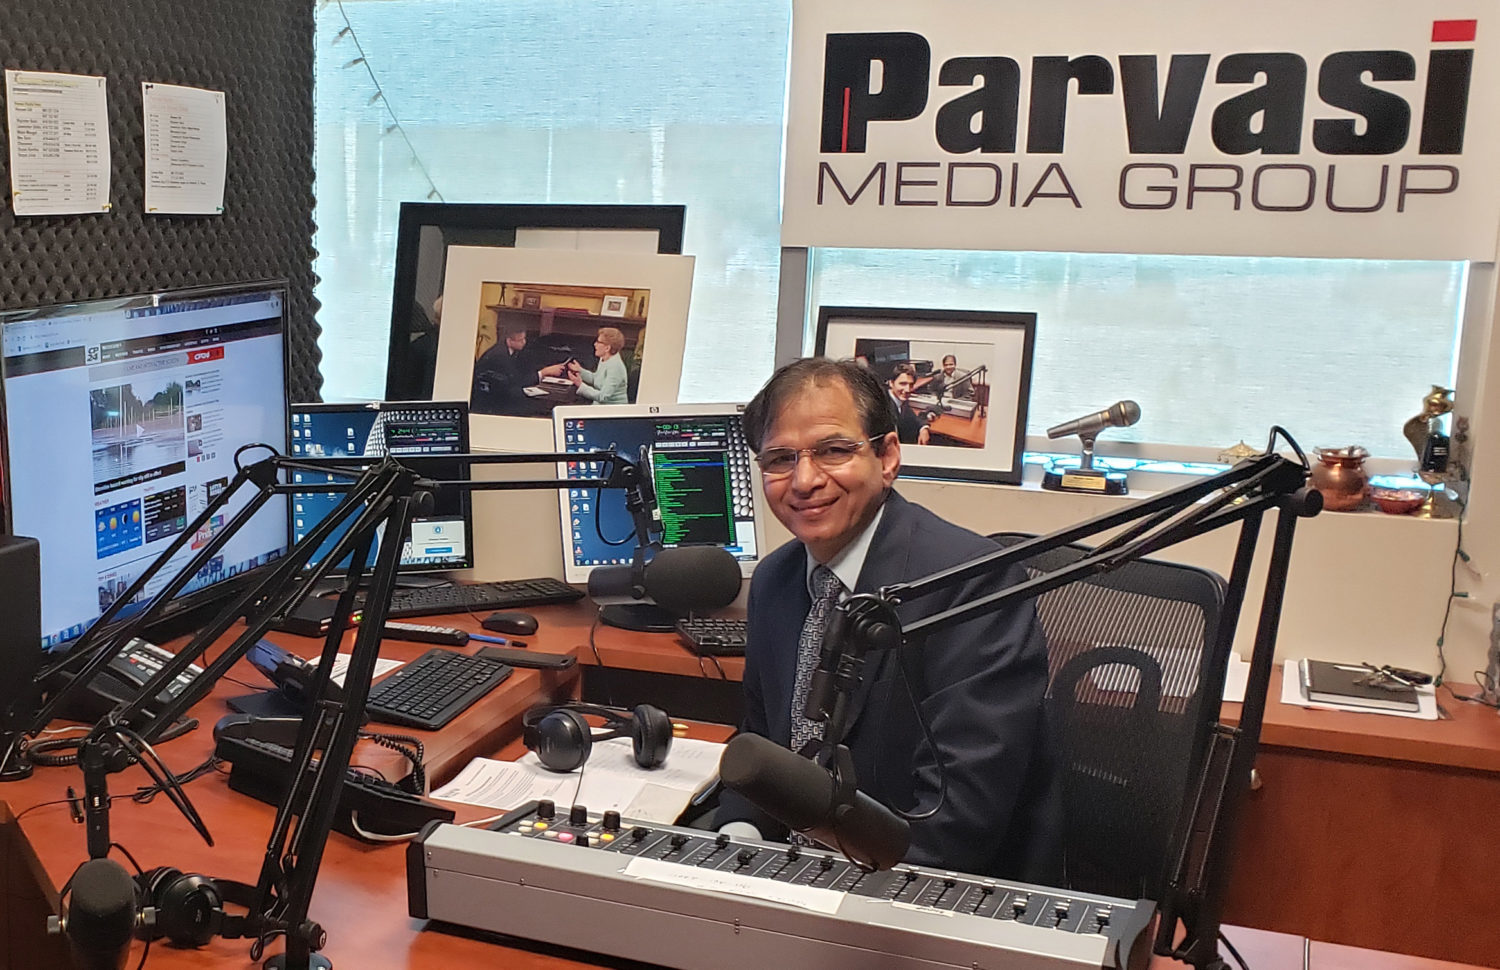 Rajinder Saini in the Parvasi Media Group office